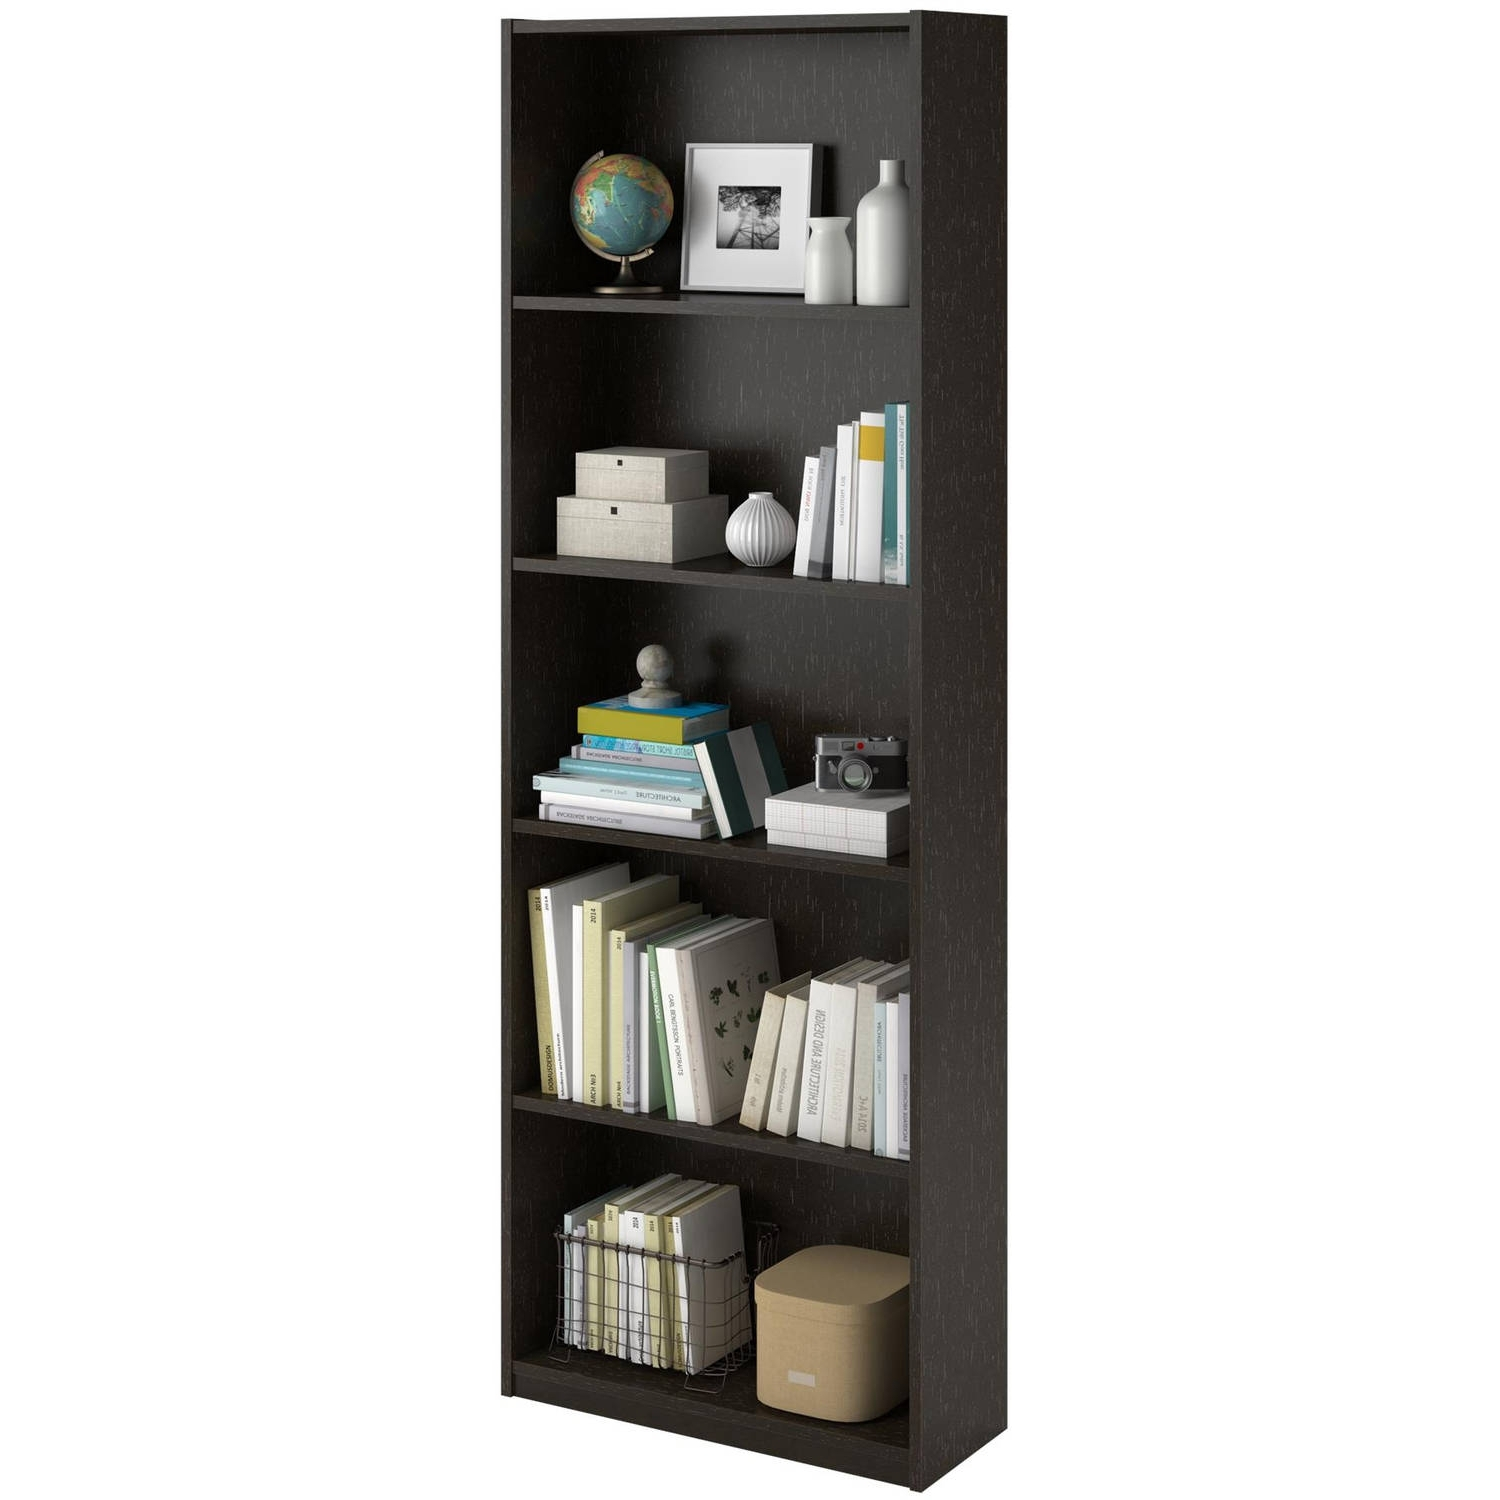 Well Liked Ameriwood 5 Shelf Bookcases, Set Of 2 (Mix And Match) – Walmart Within White 5 Shelf Bookcases (View 10 of 15)